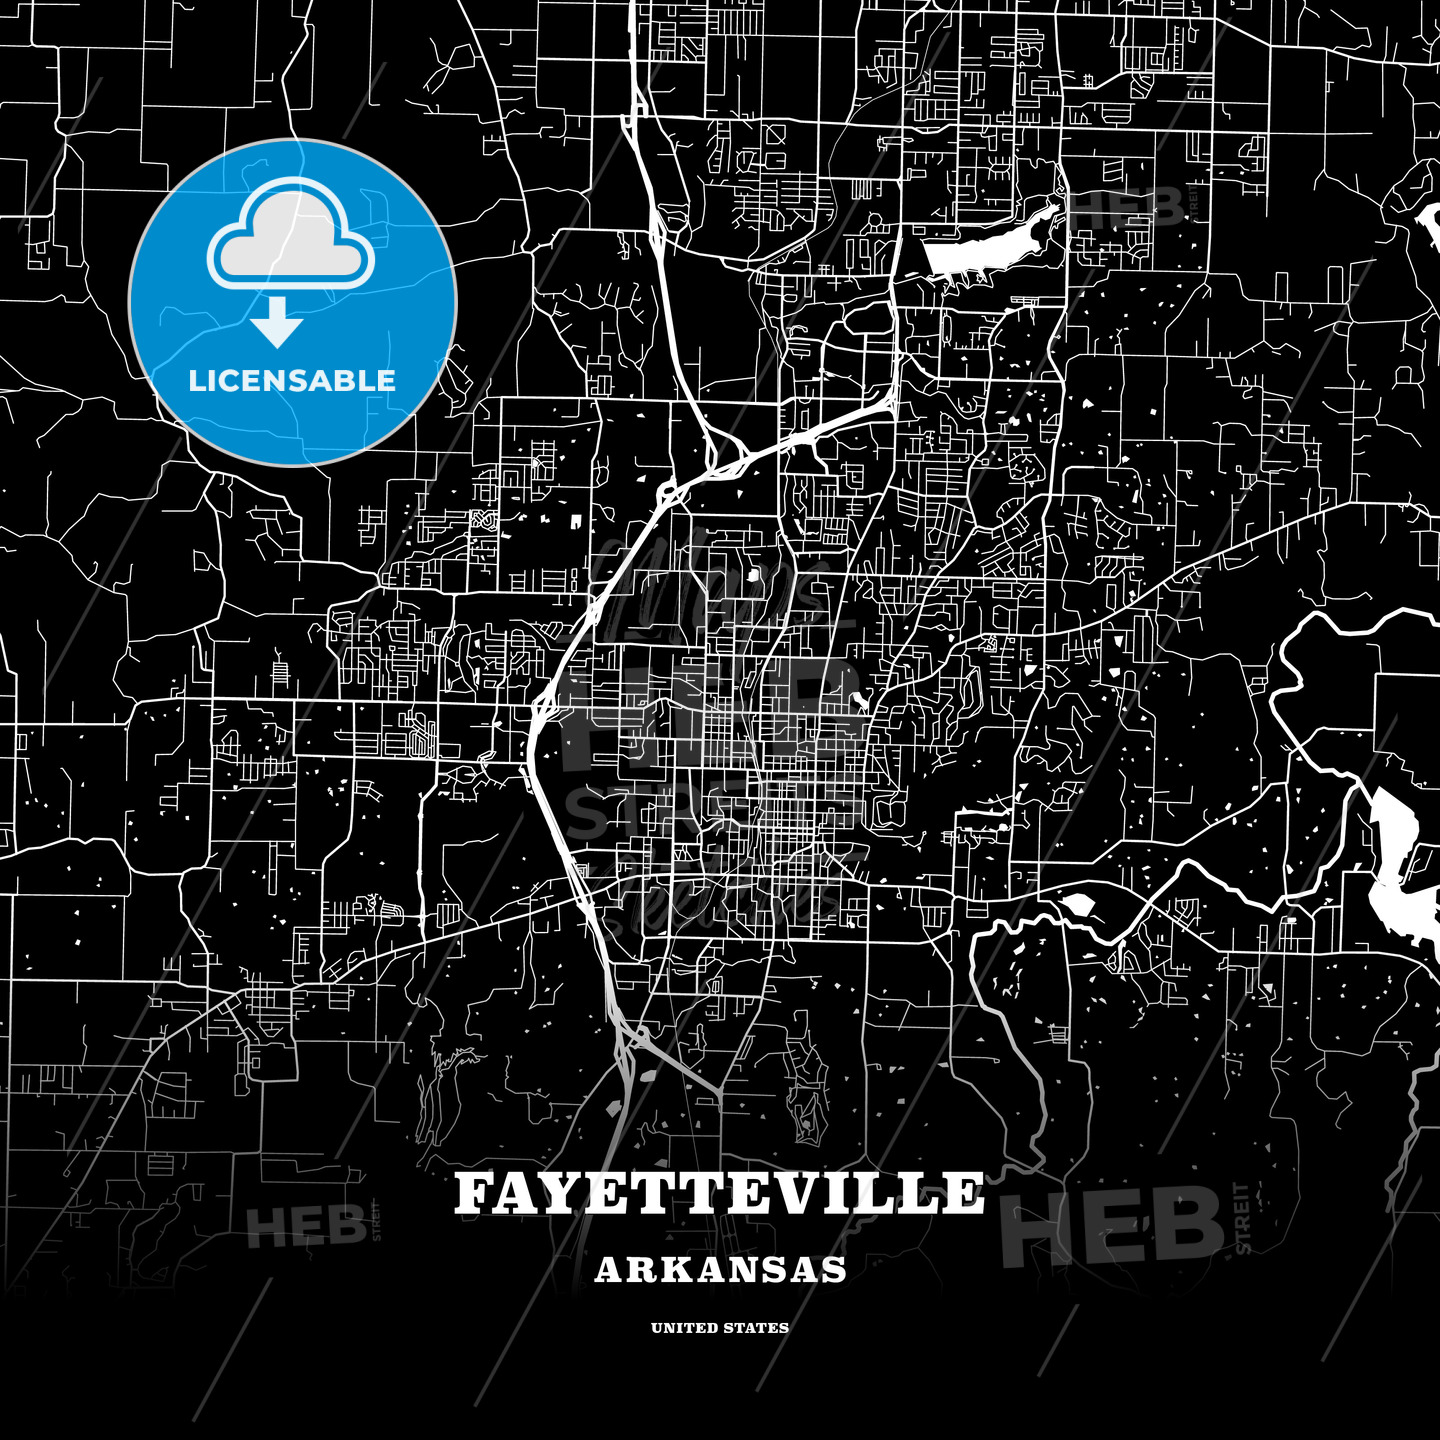 Black map poster template of Fayetteville, Arkansas, USA on map of o'fallon, map of otto, map of cornelius, map of hazlehurst, map of west columbia, map of the hills, map of roan mtn, map of crittenden county, map of spring city, map of alexander county, map of hookerton, map of horseheads, map of stone county, map of lawrenceburg, map of girard, map of china grove, map of oak hill, map of pauls valley, map of graysville, map of roane county,